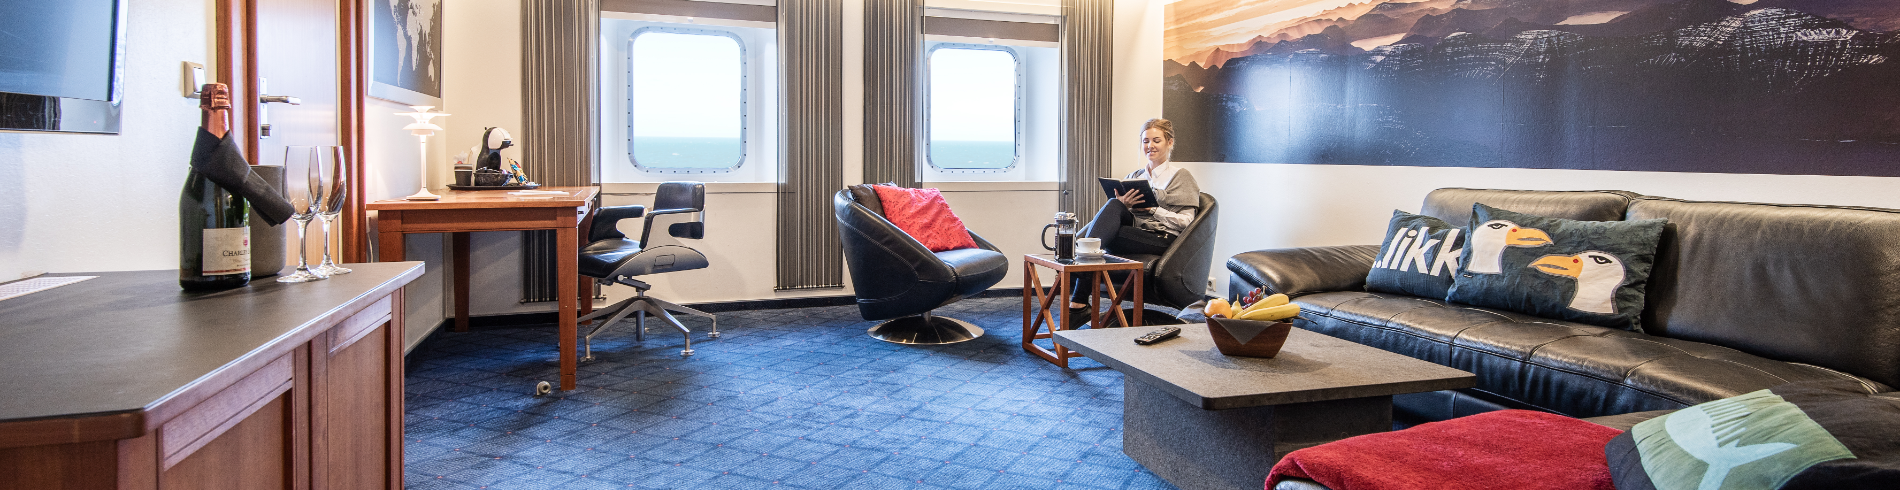 Cabins onboard cover image